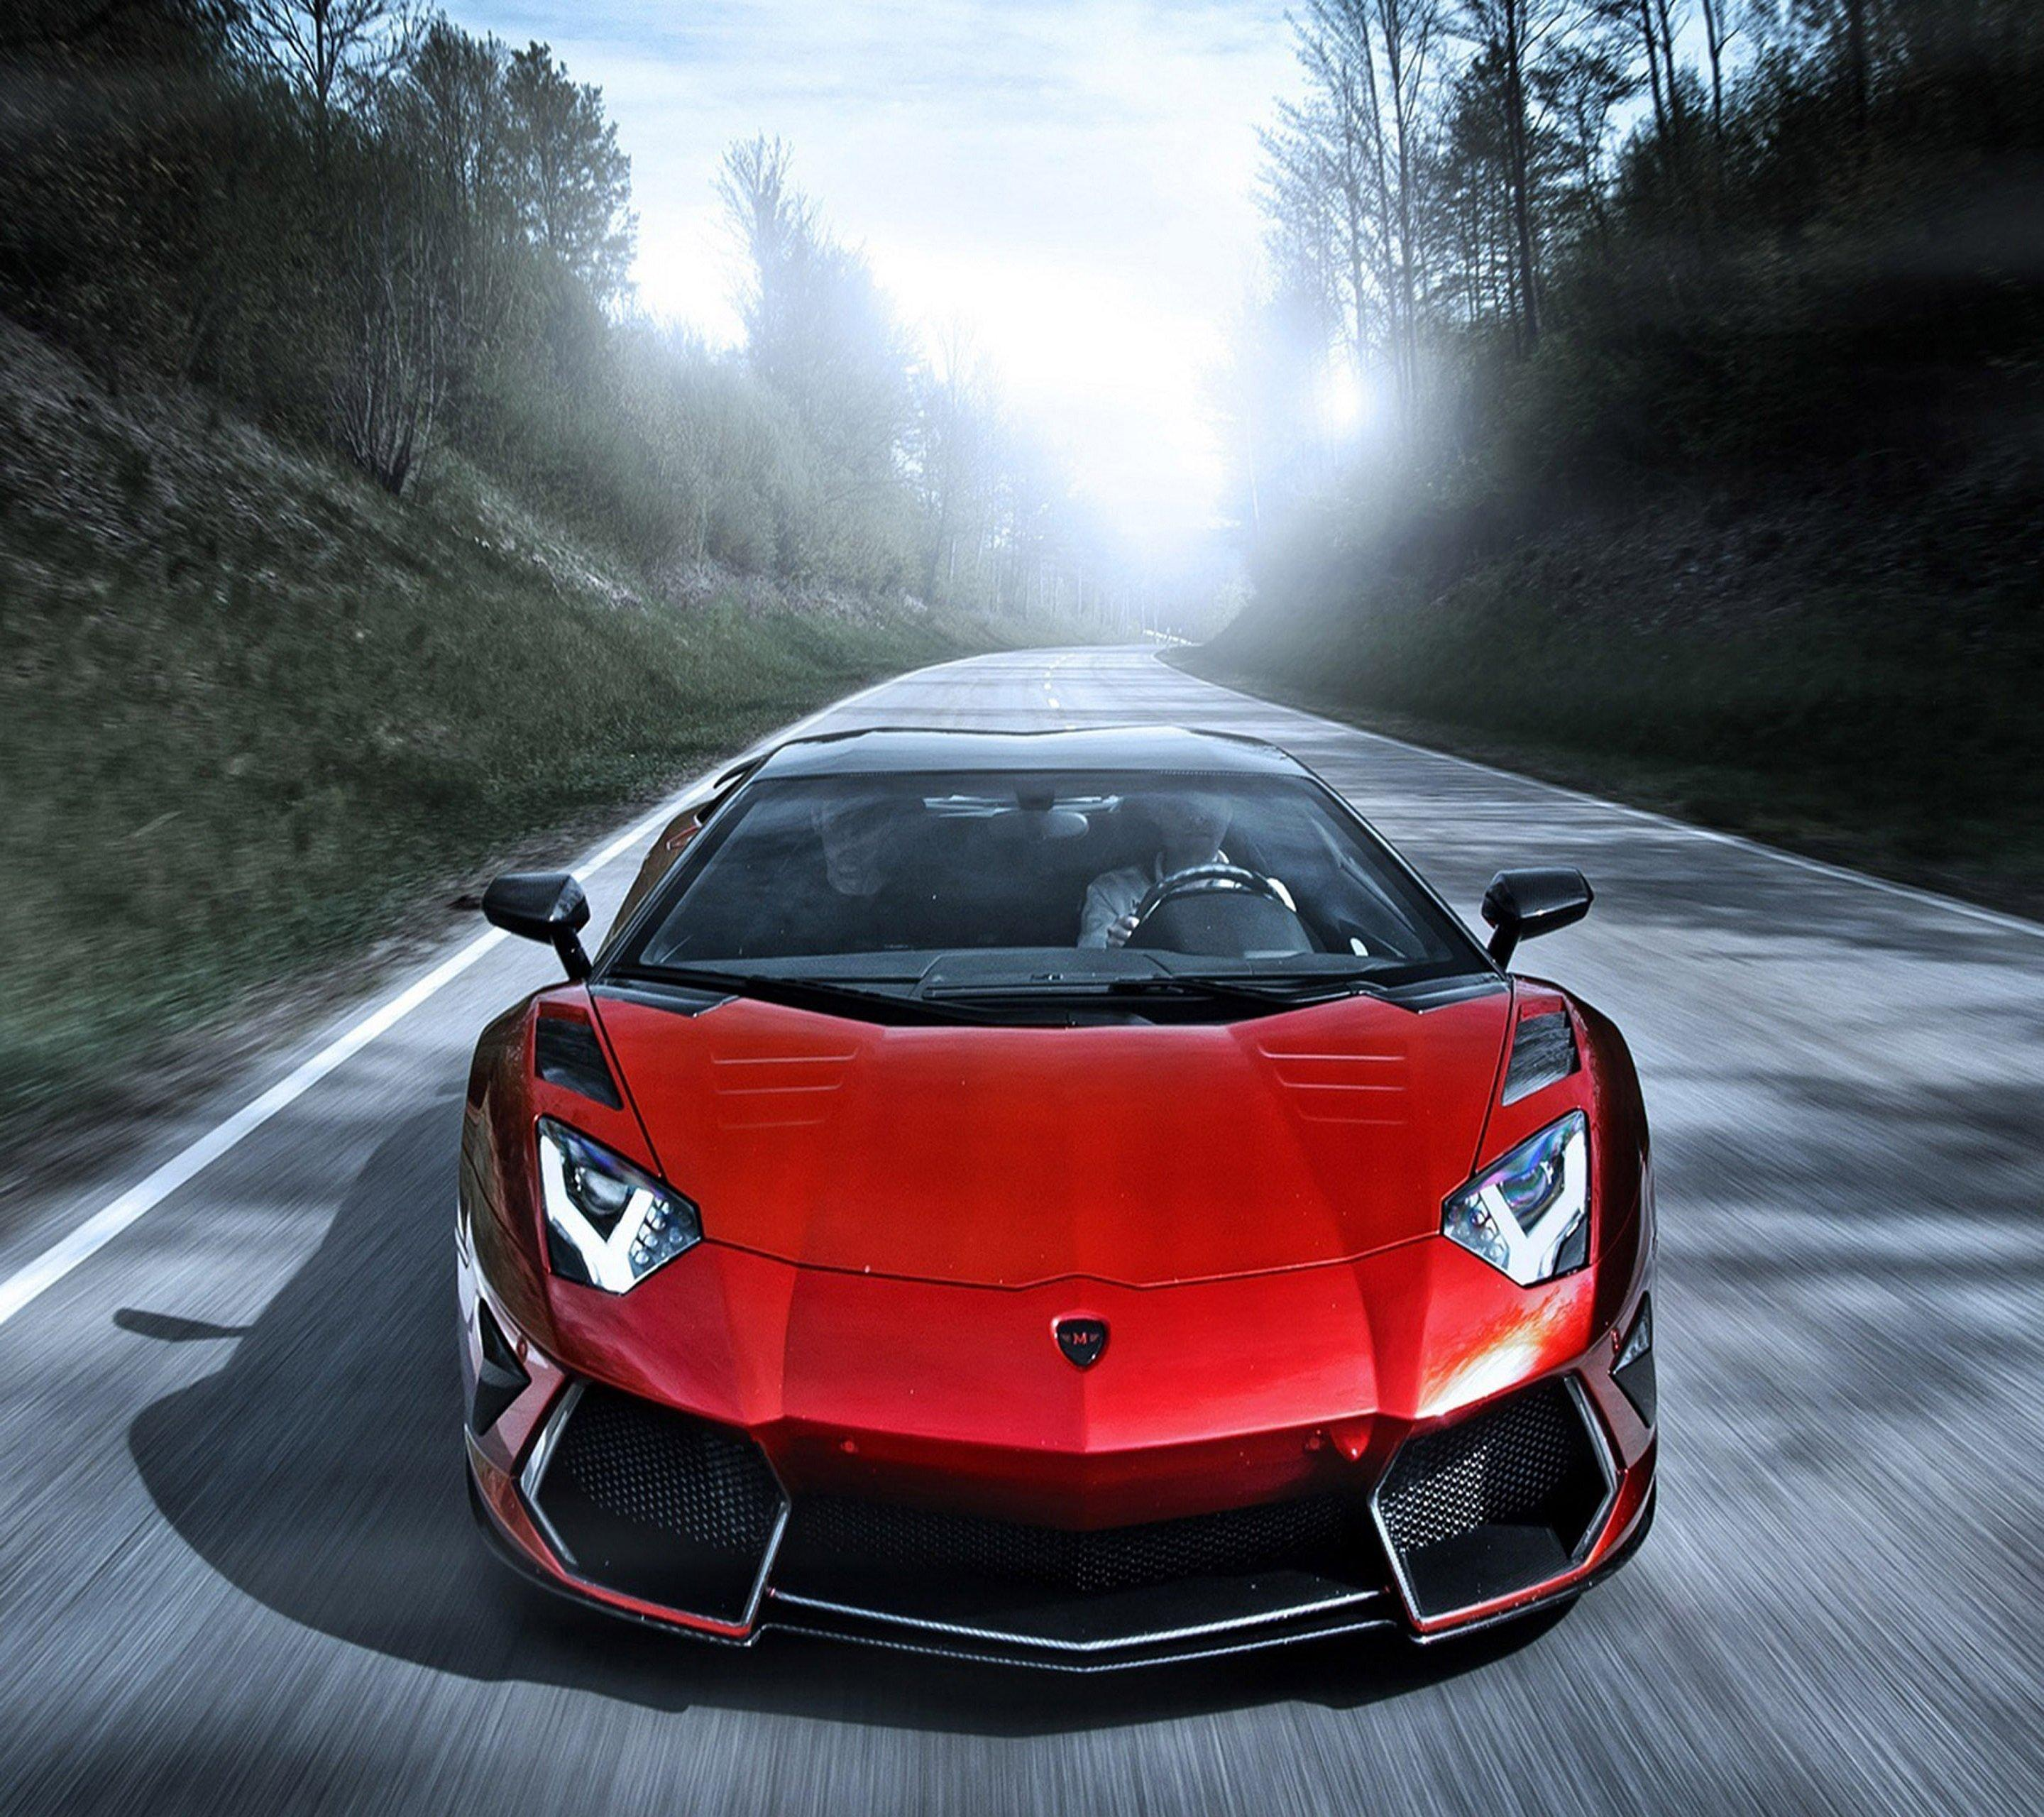 Black And Red Lambo Wallpapers - Wallpaper Cave